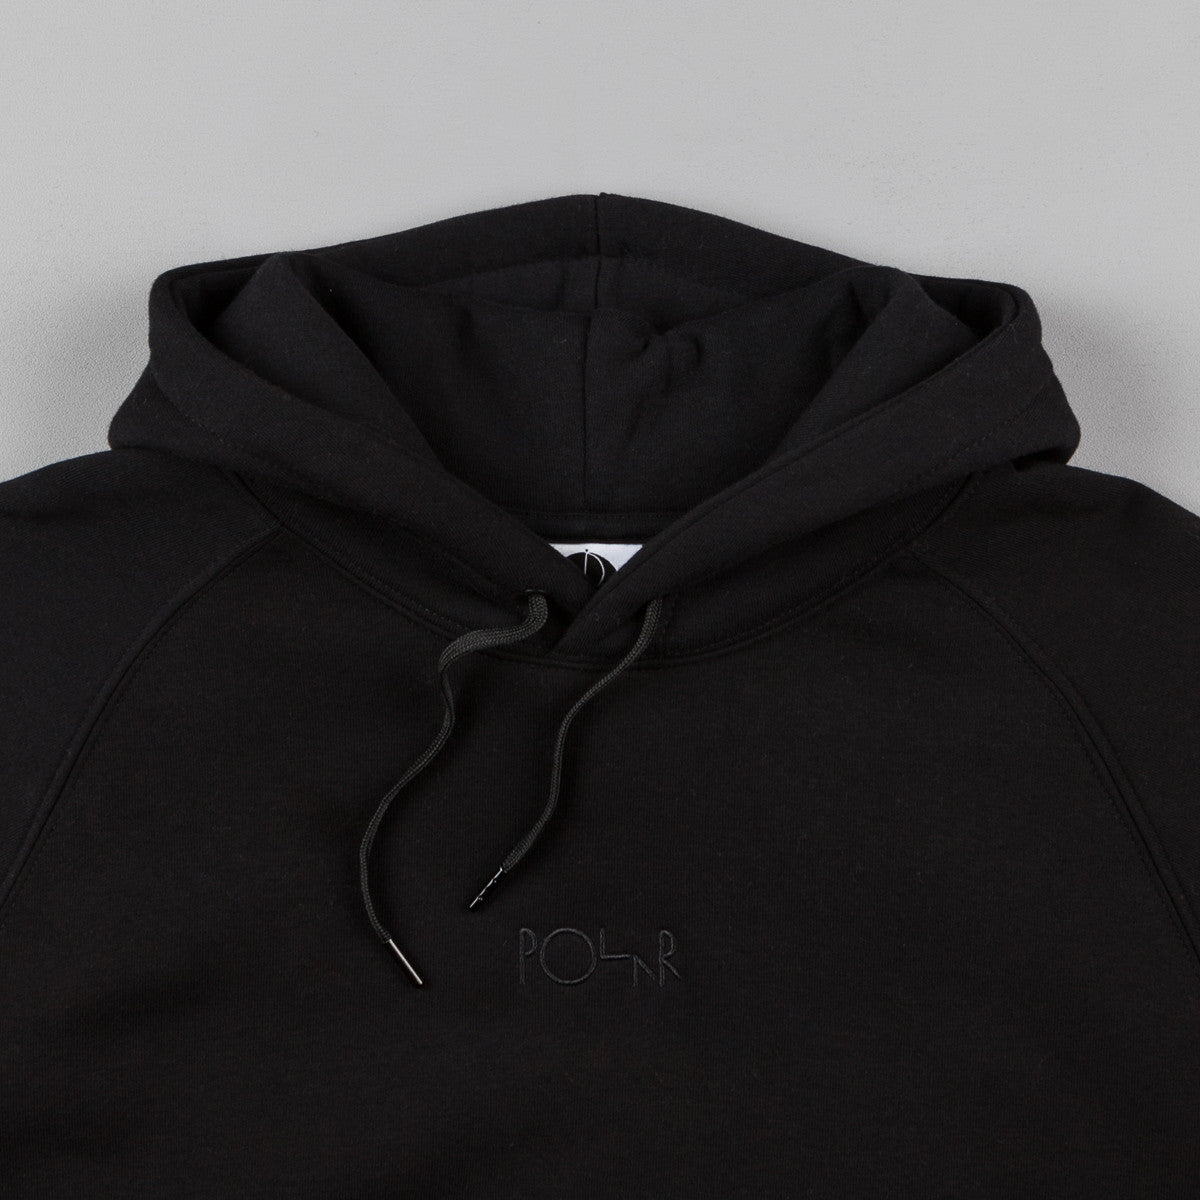 Polar Default Hooded Sweatshirt - Black / Black